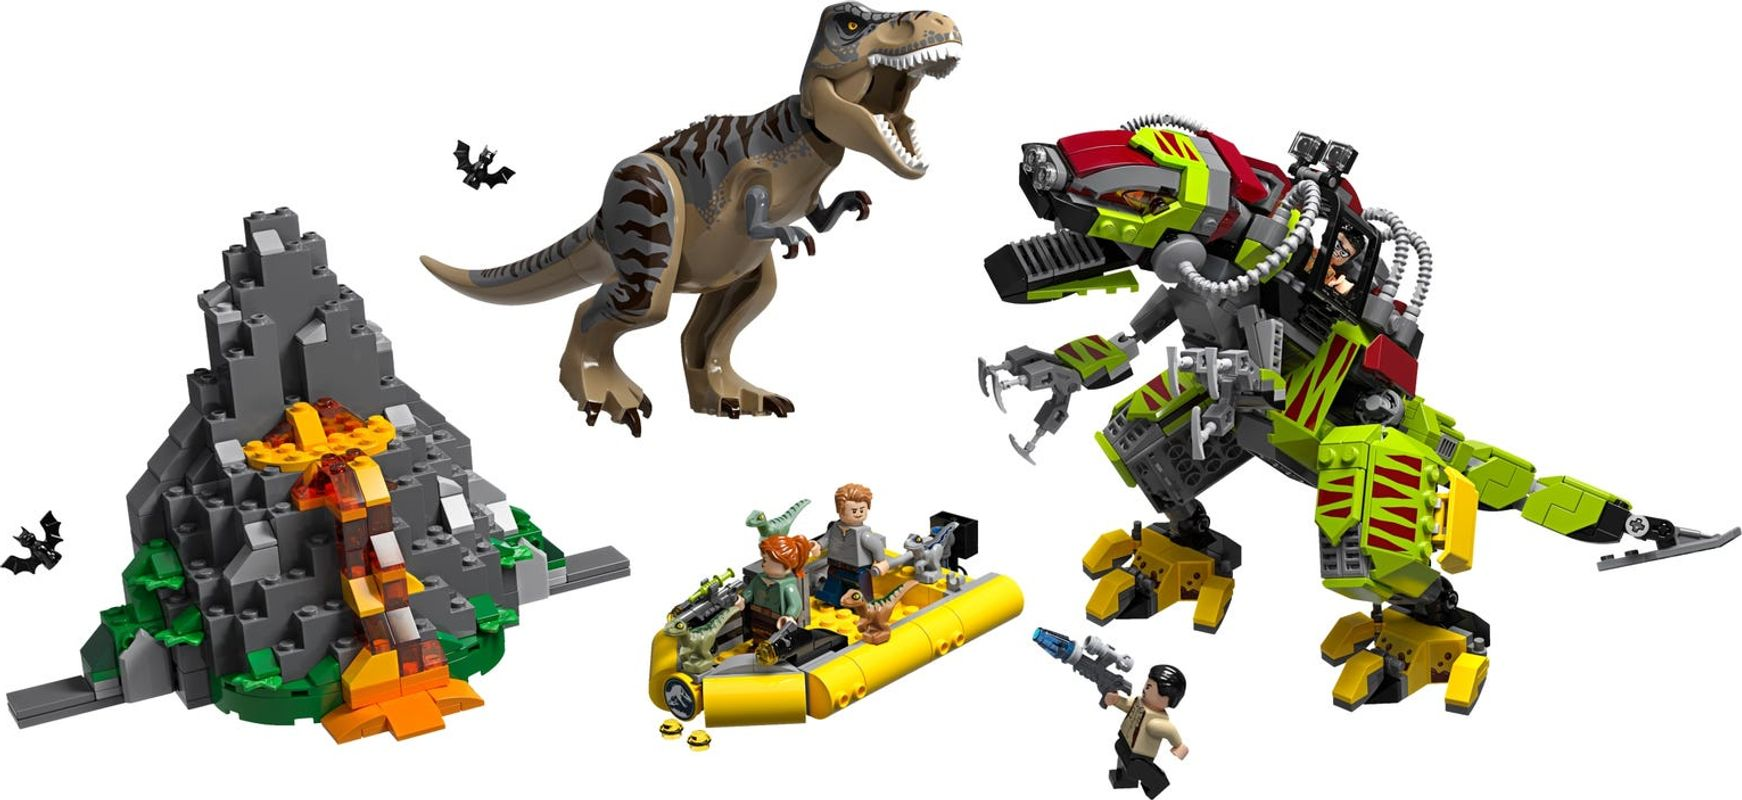 T. rex vs Dino-Mech Battle components